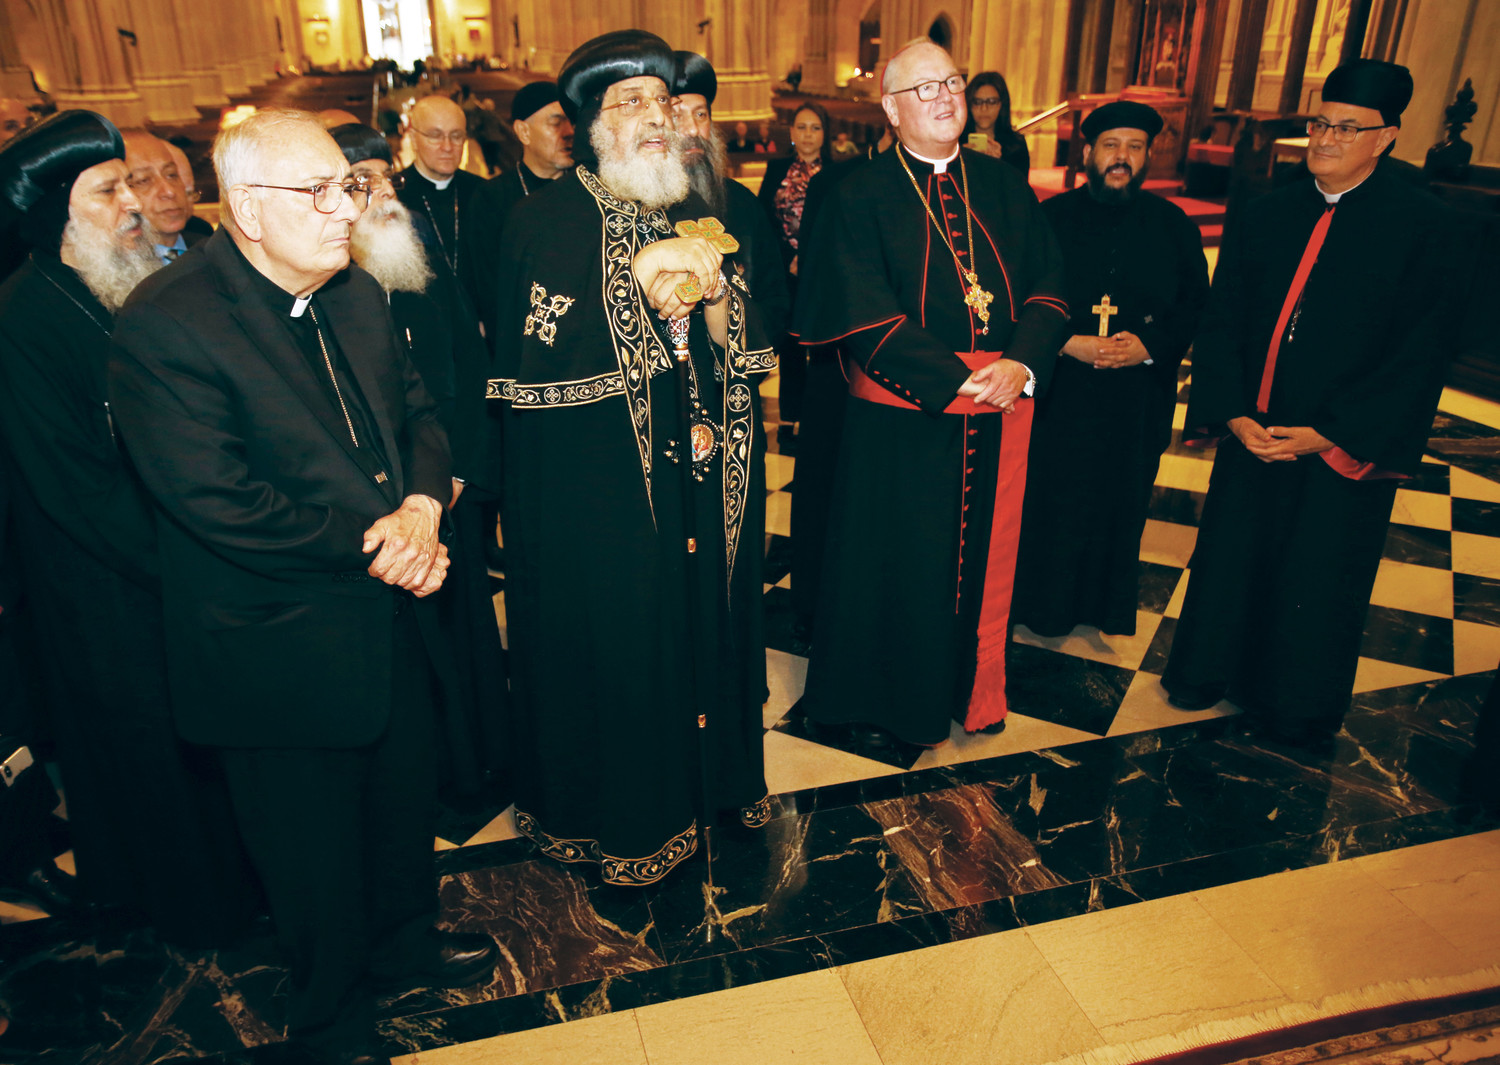 Pope Tawadros and Cardinal Dolan pray in the sanctuary of St. Patrick's Cathedral along with other prelates, including Bishop Nicholas DiMarzio of Brooklyn, left, and Bishop Gregory Mansour of the Eparchy of St. Maron of Brooklyn, right.